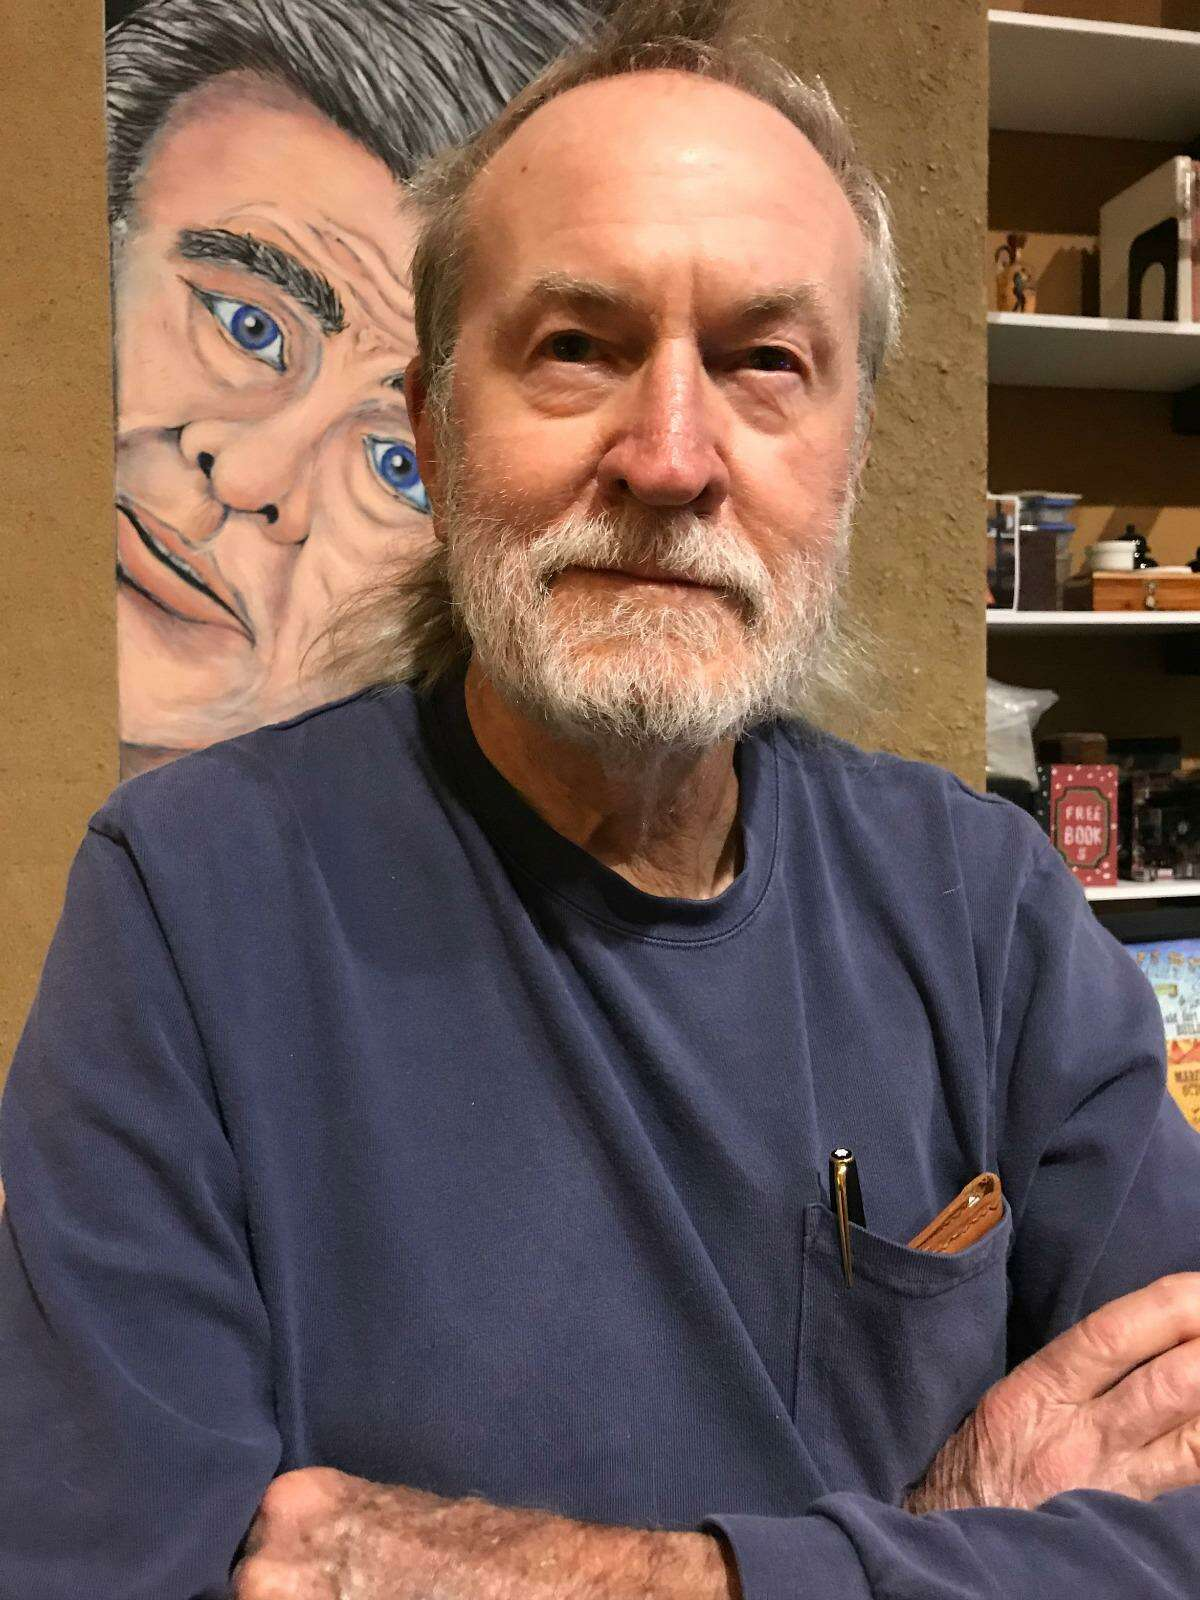 Archway Gallery announced the winners of its 13th Annual Juried Exhibition with video remarks by Juror Wayne Gilbert and an in-person all day opening showcasing the works of 43 local artists.